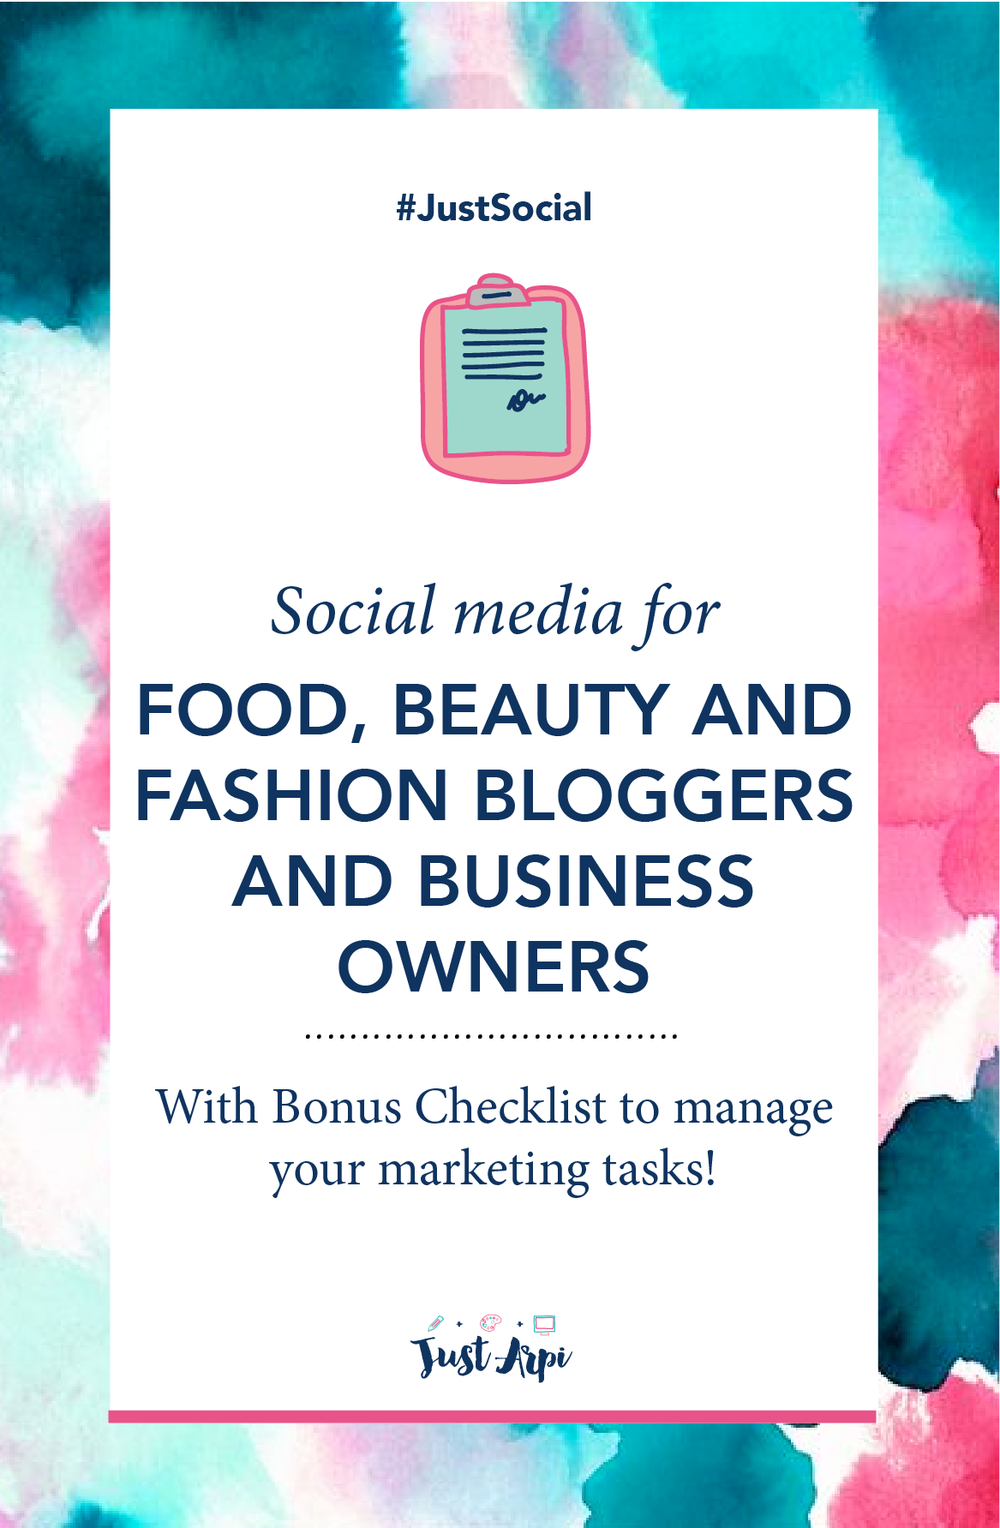 Social media for food fashion and beauty bloggers and business owners-14-14-14